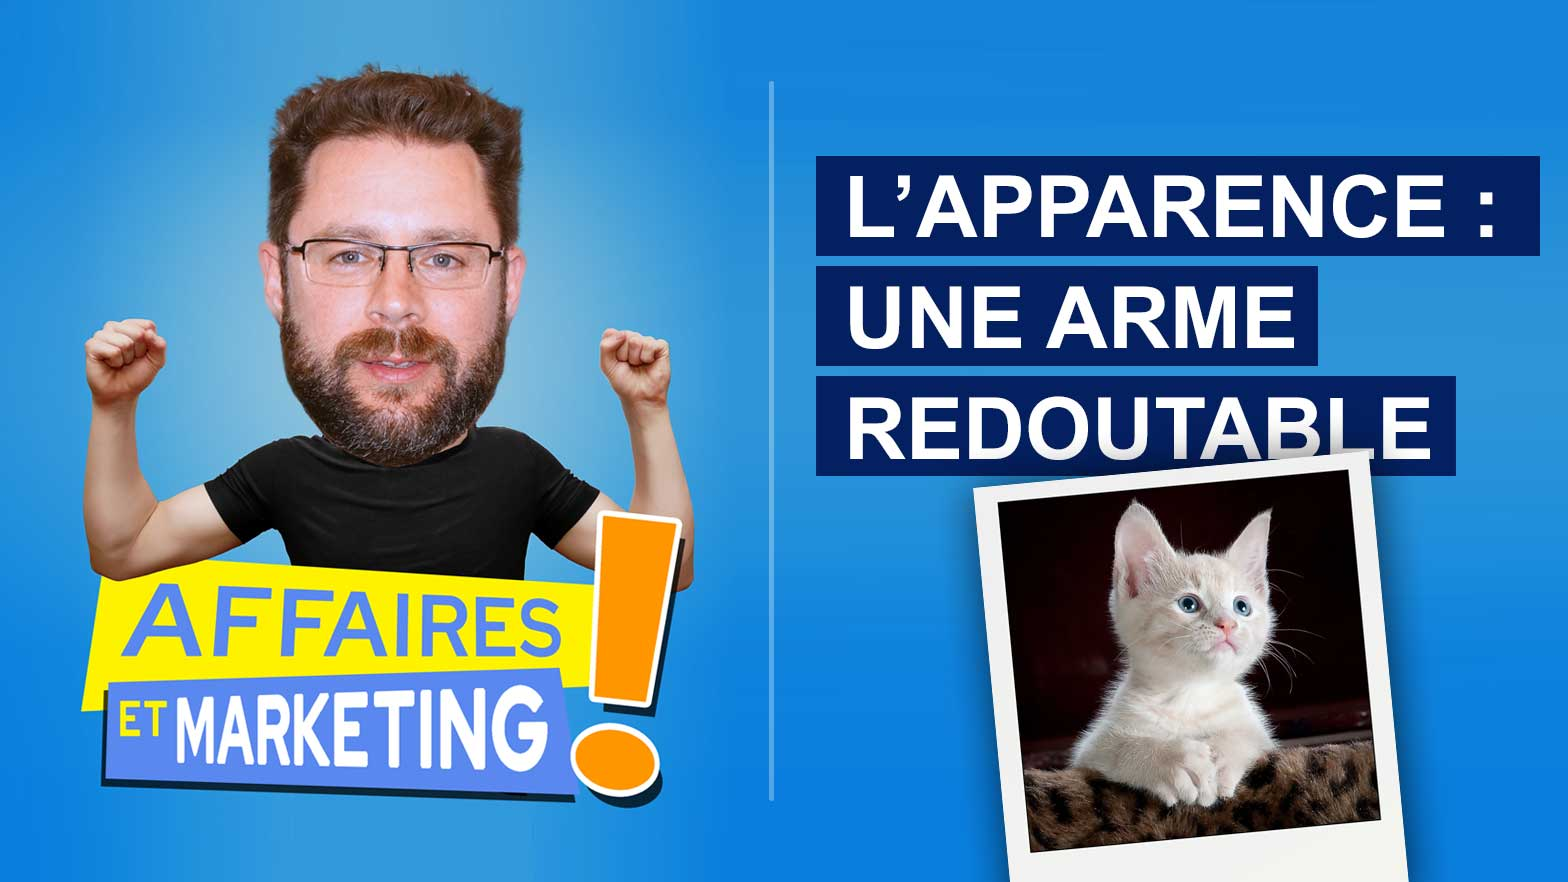 L'apparence : une arme redoutable